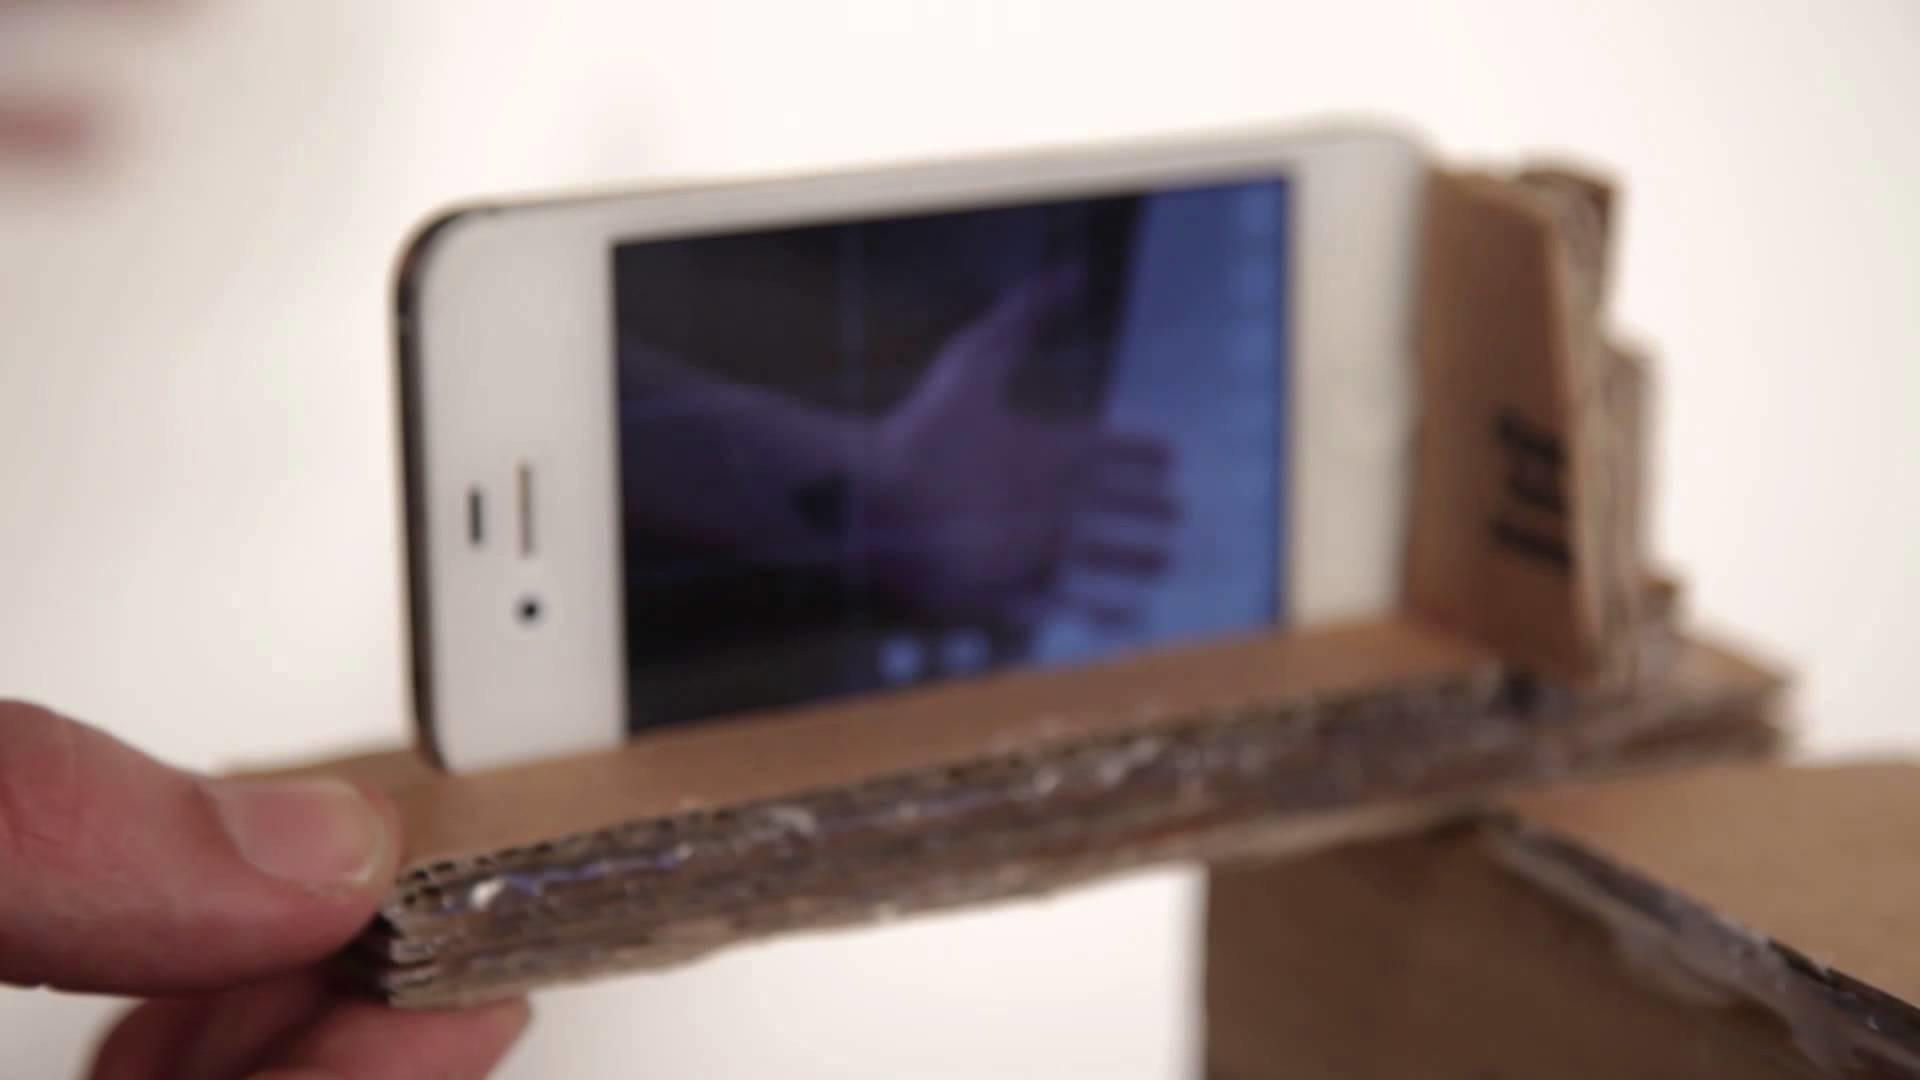 Cardboard Diy Mobile Cell Phone Camera Rig